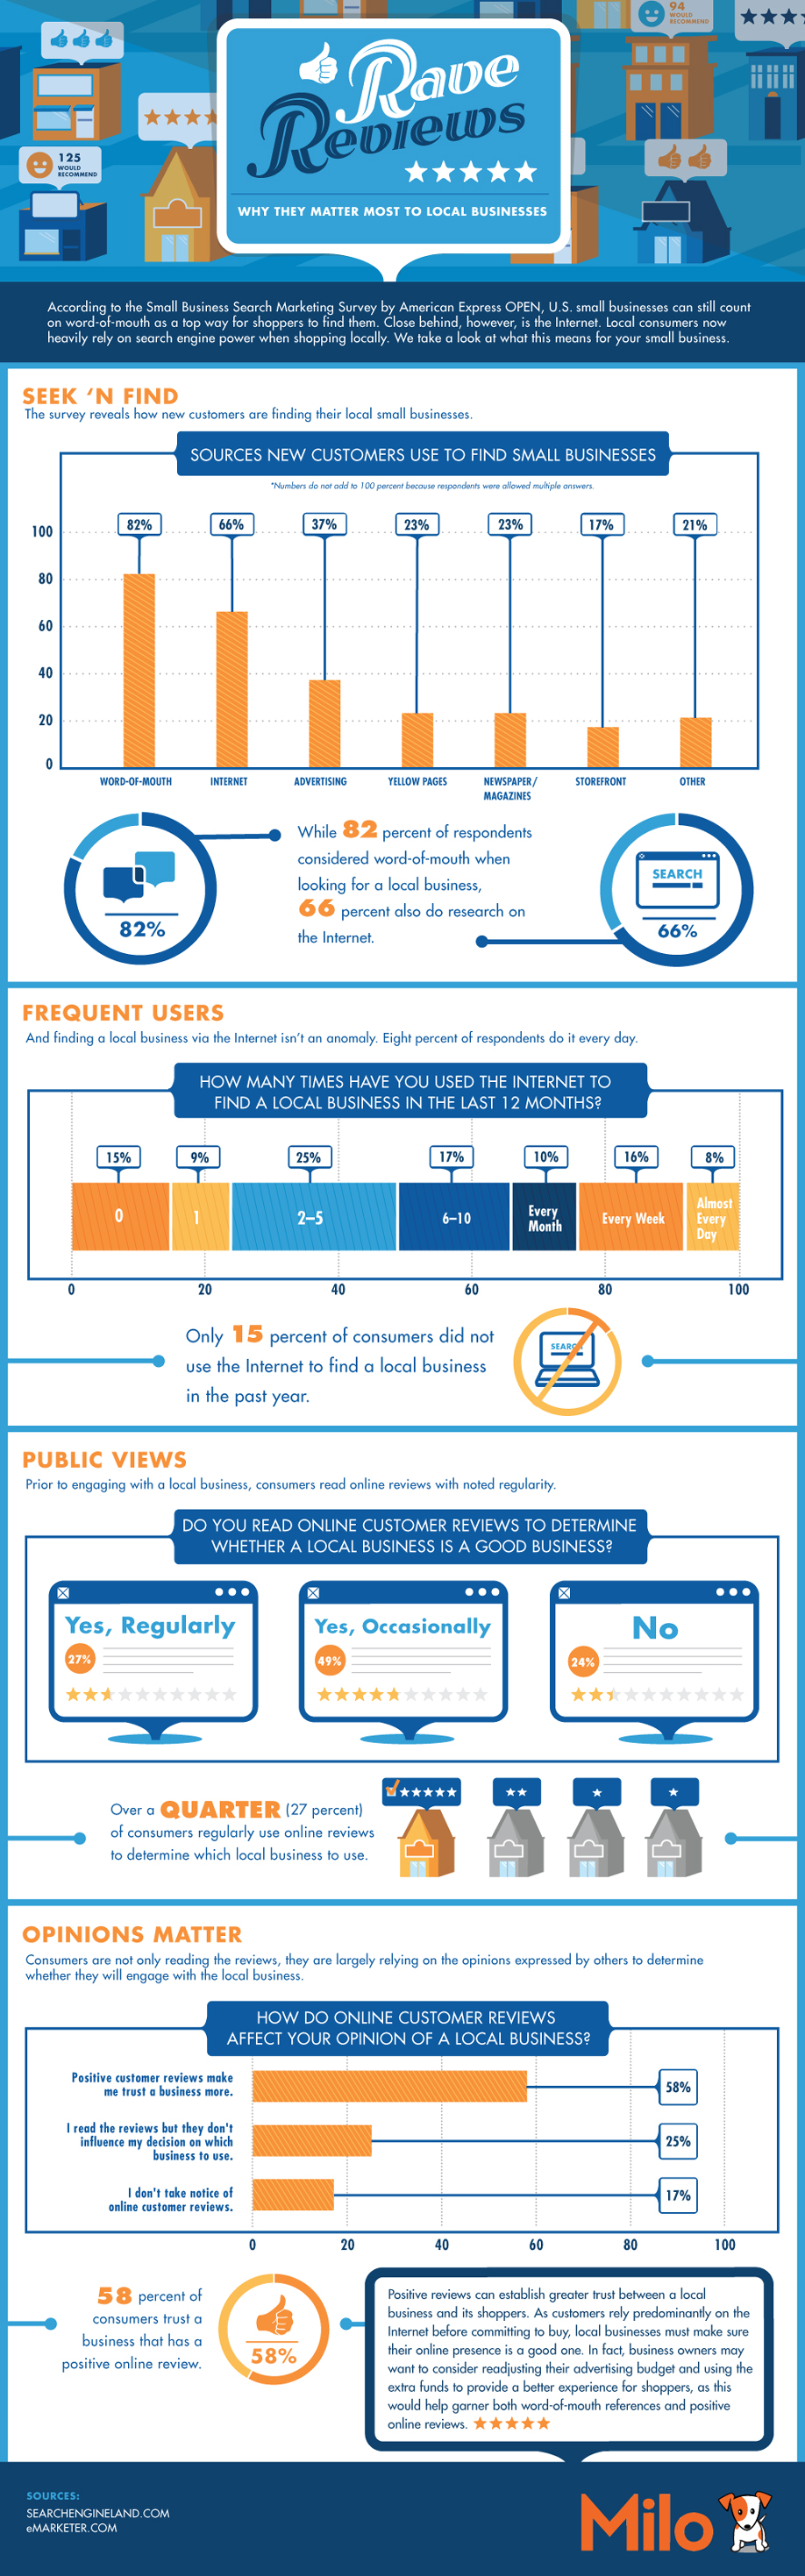 Infographic: Rave Reviews: Why Do They Matter Most to Local Businesses